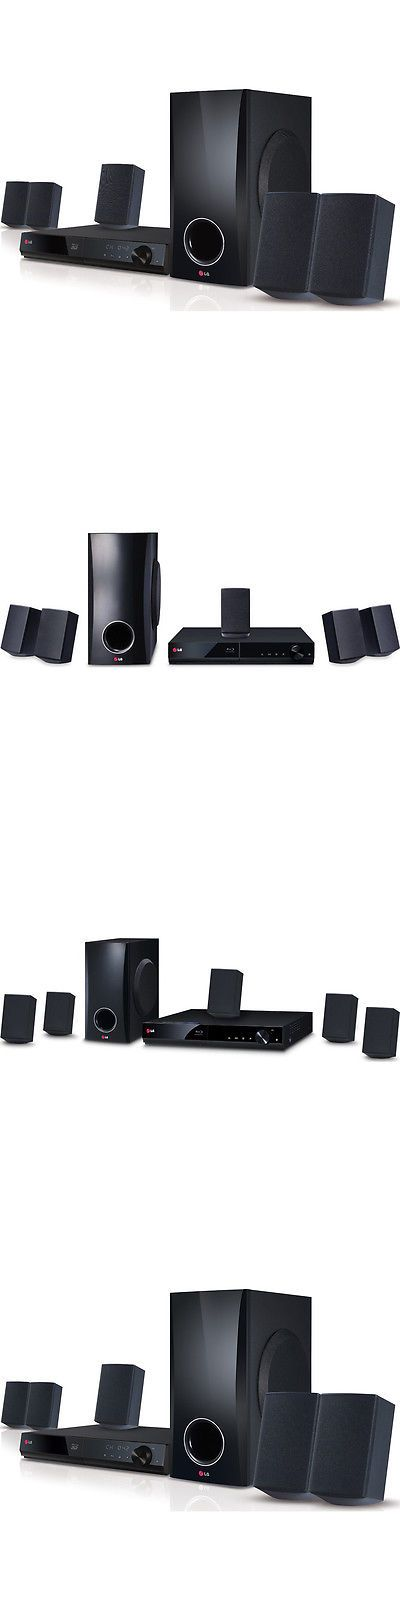 Home Theater Systems: Lg Bh5140s 3D Capable 500W 5.1Ch Blu-Ray Disc Home Theater System -> BUY IT NOW ONLY: $170 on eBay!